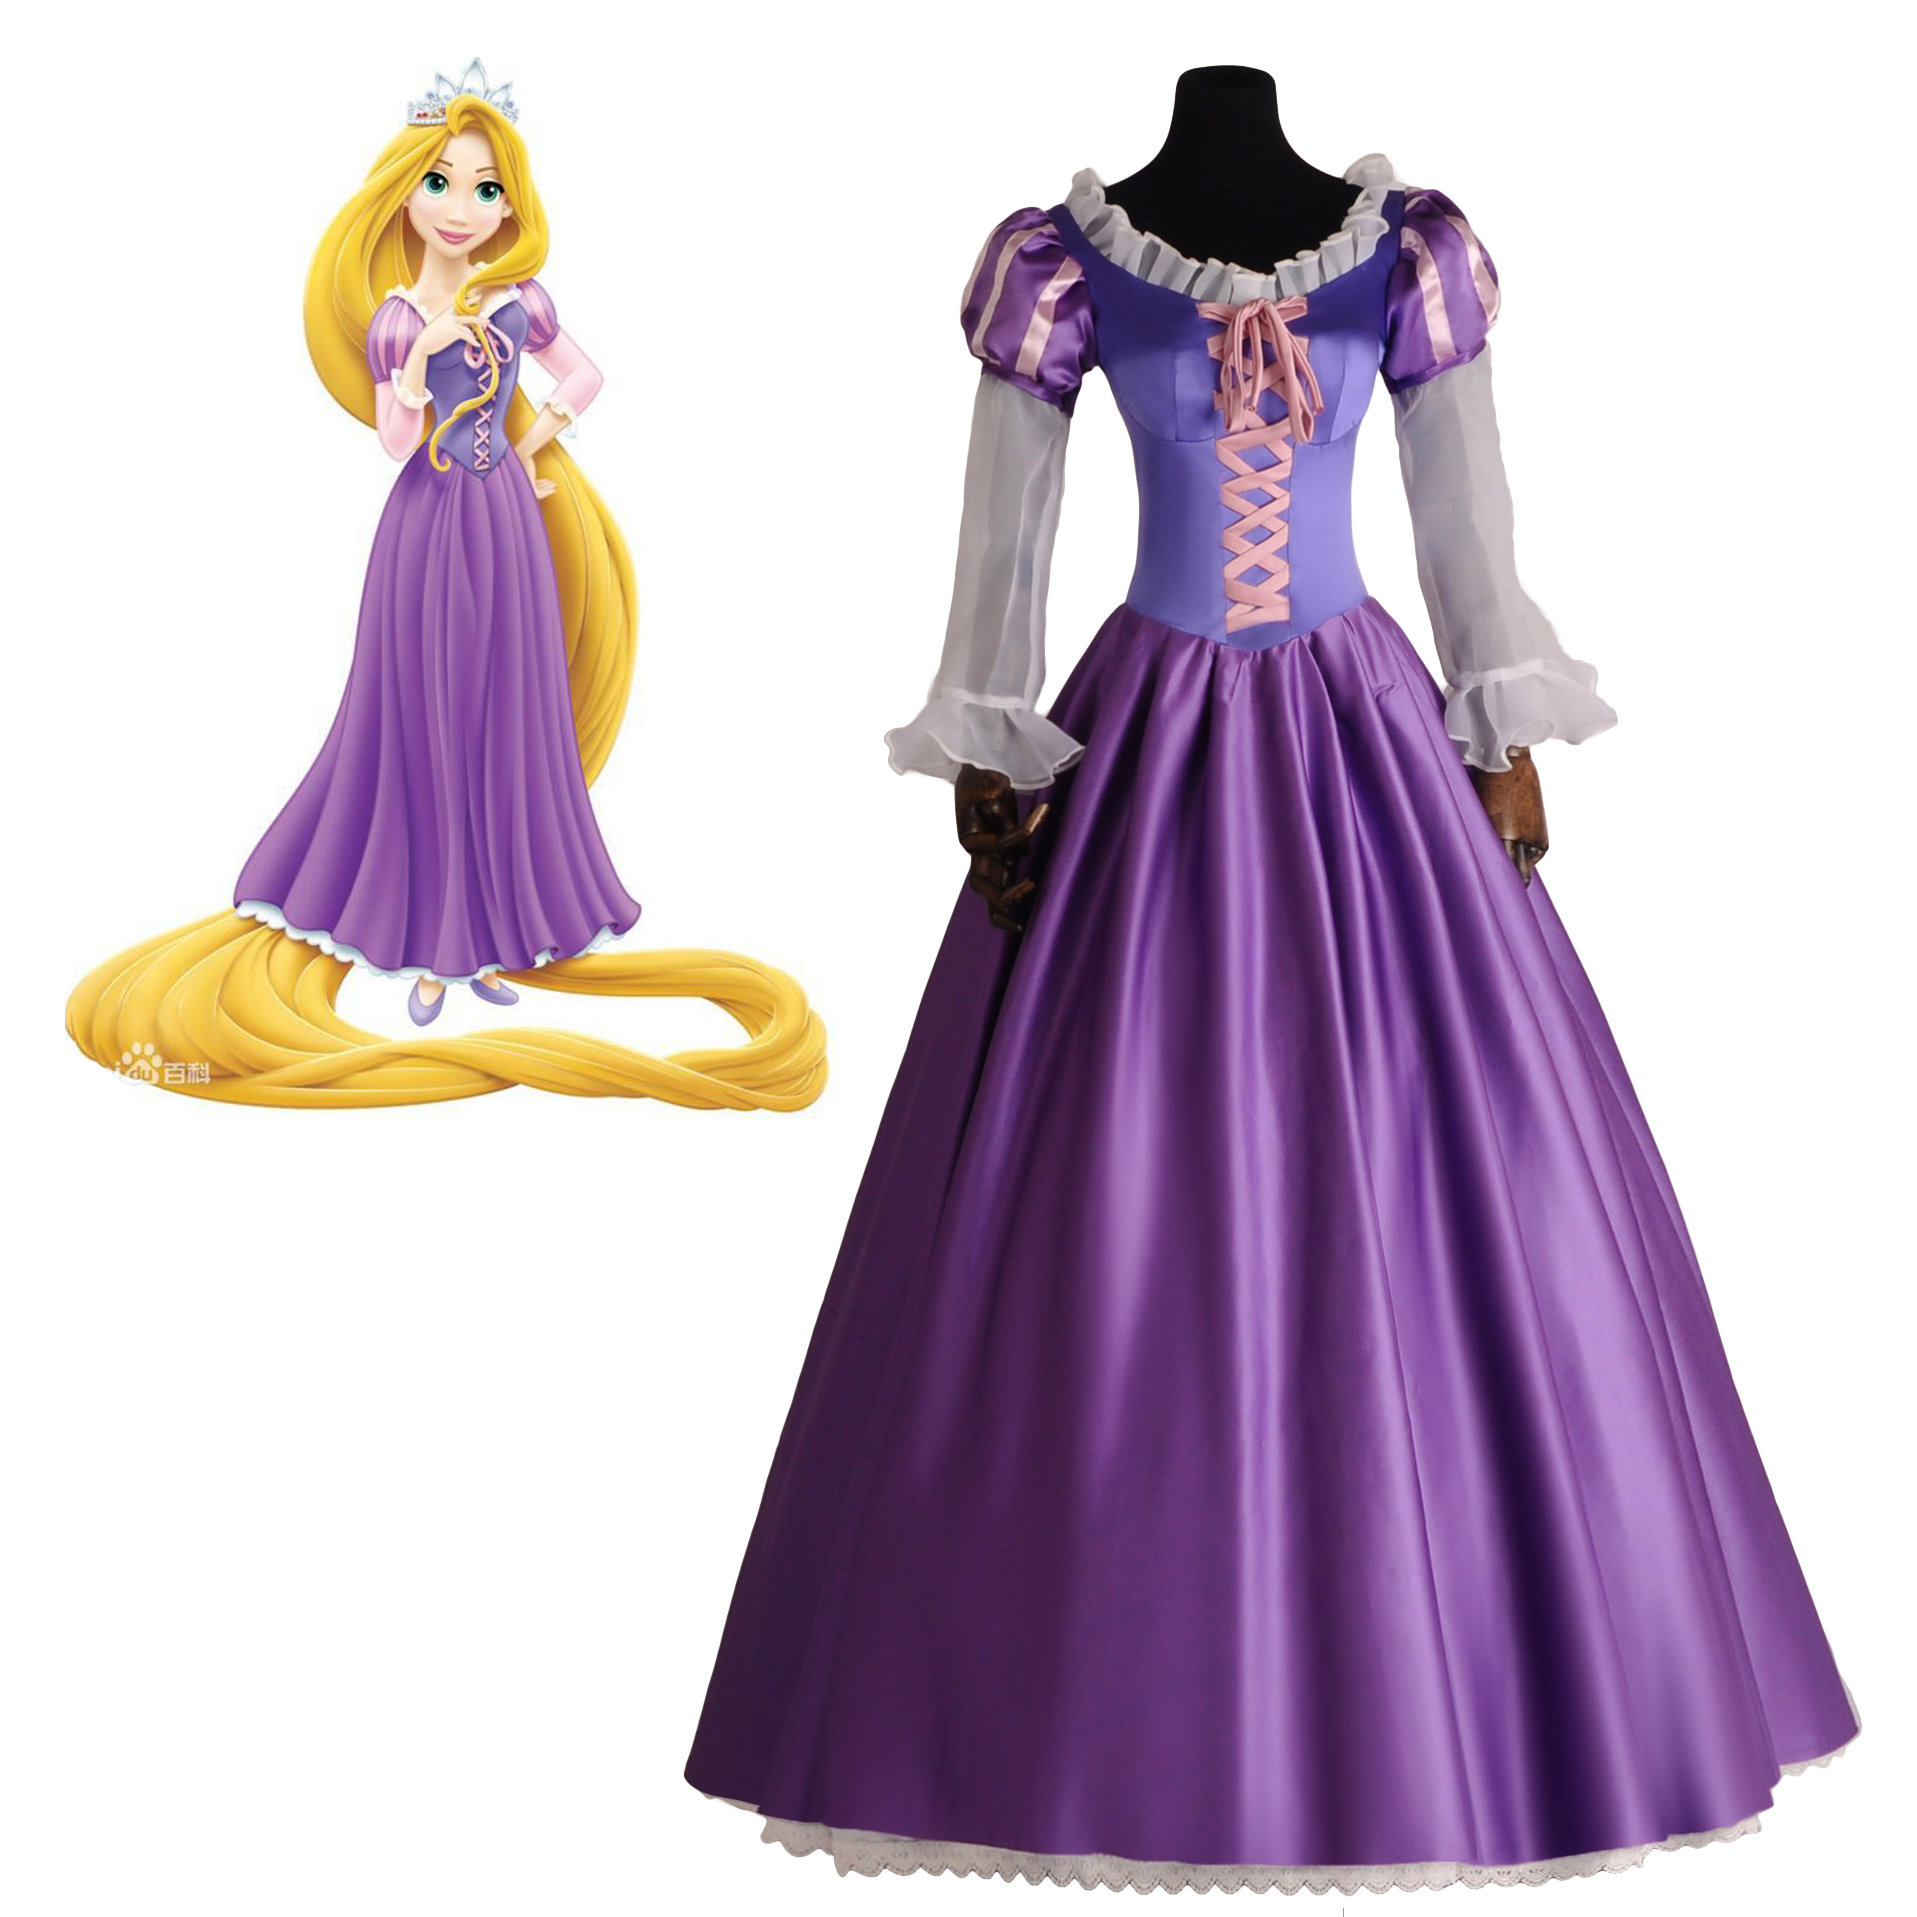 Adult Women Princess Rapunzel Cosplay Costume DramaCostume Girls Women Fancy Dress Purple Lace Up Ball Gown Party Dress